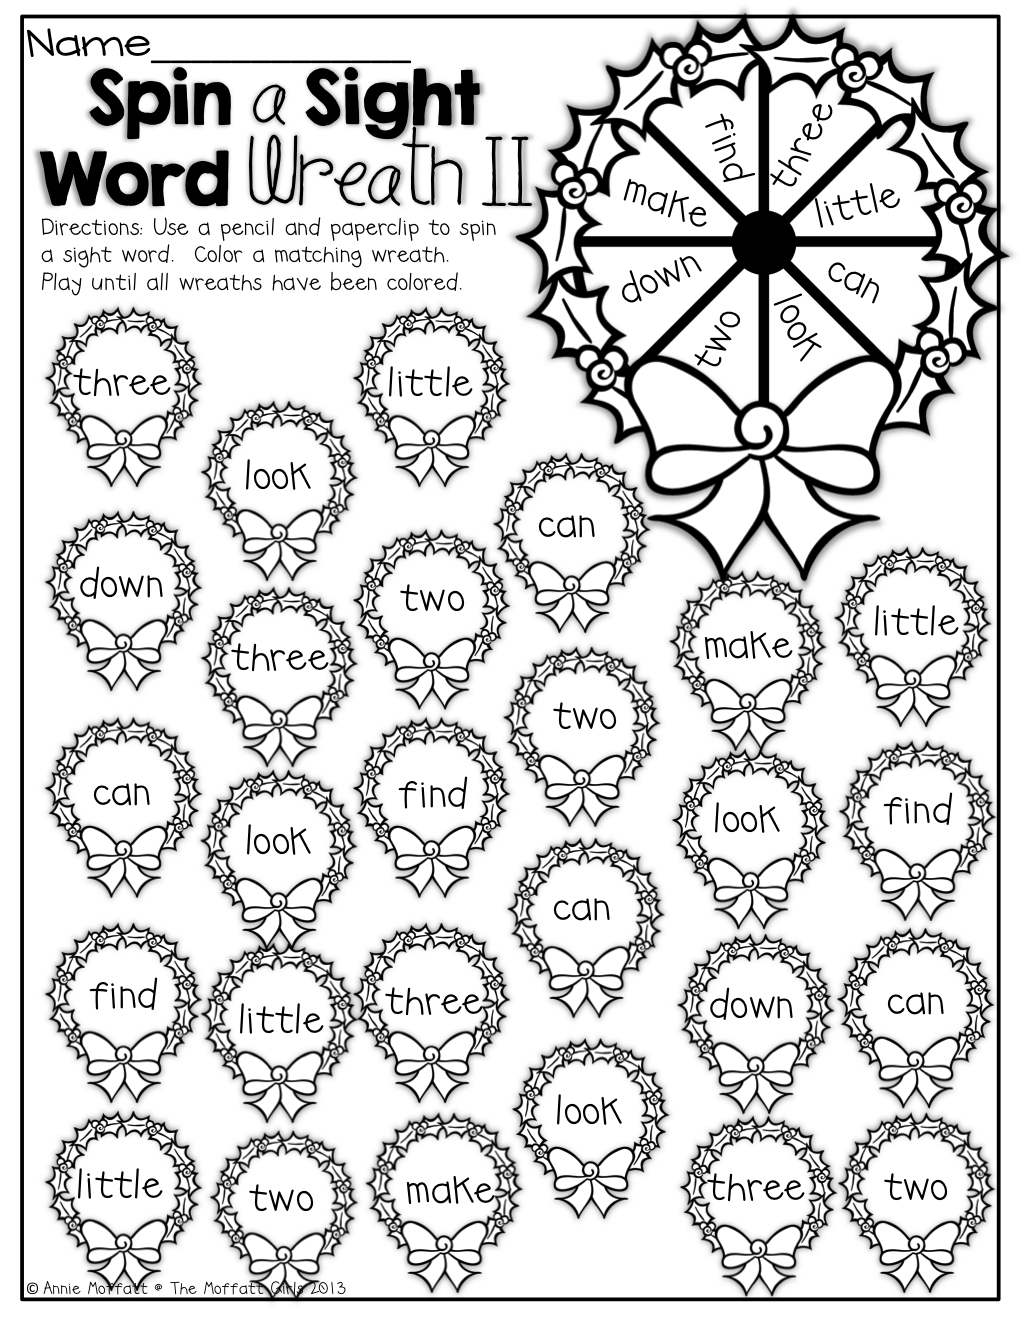 Spin And Color A Sight Word Wreath